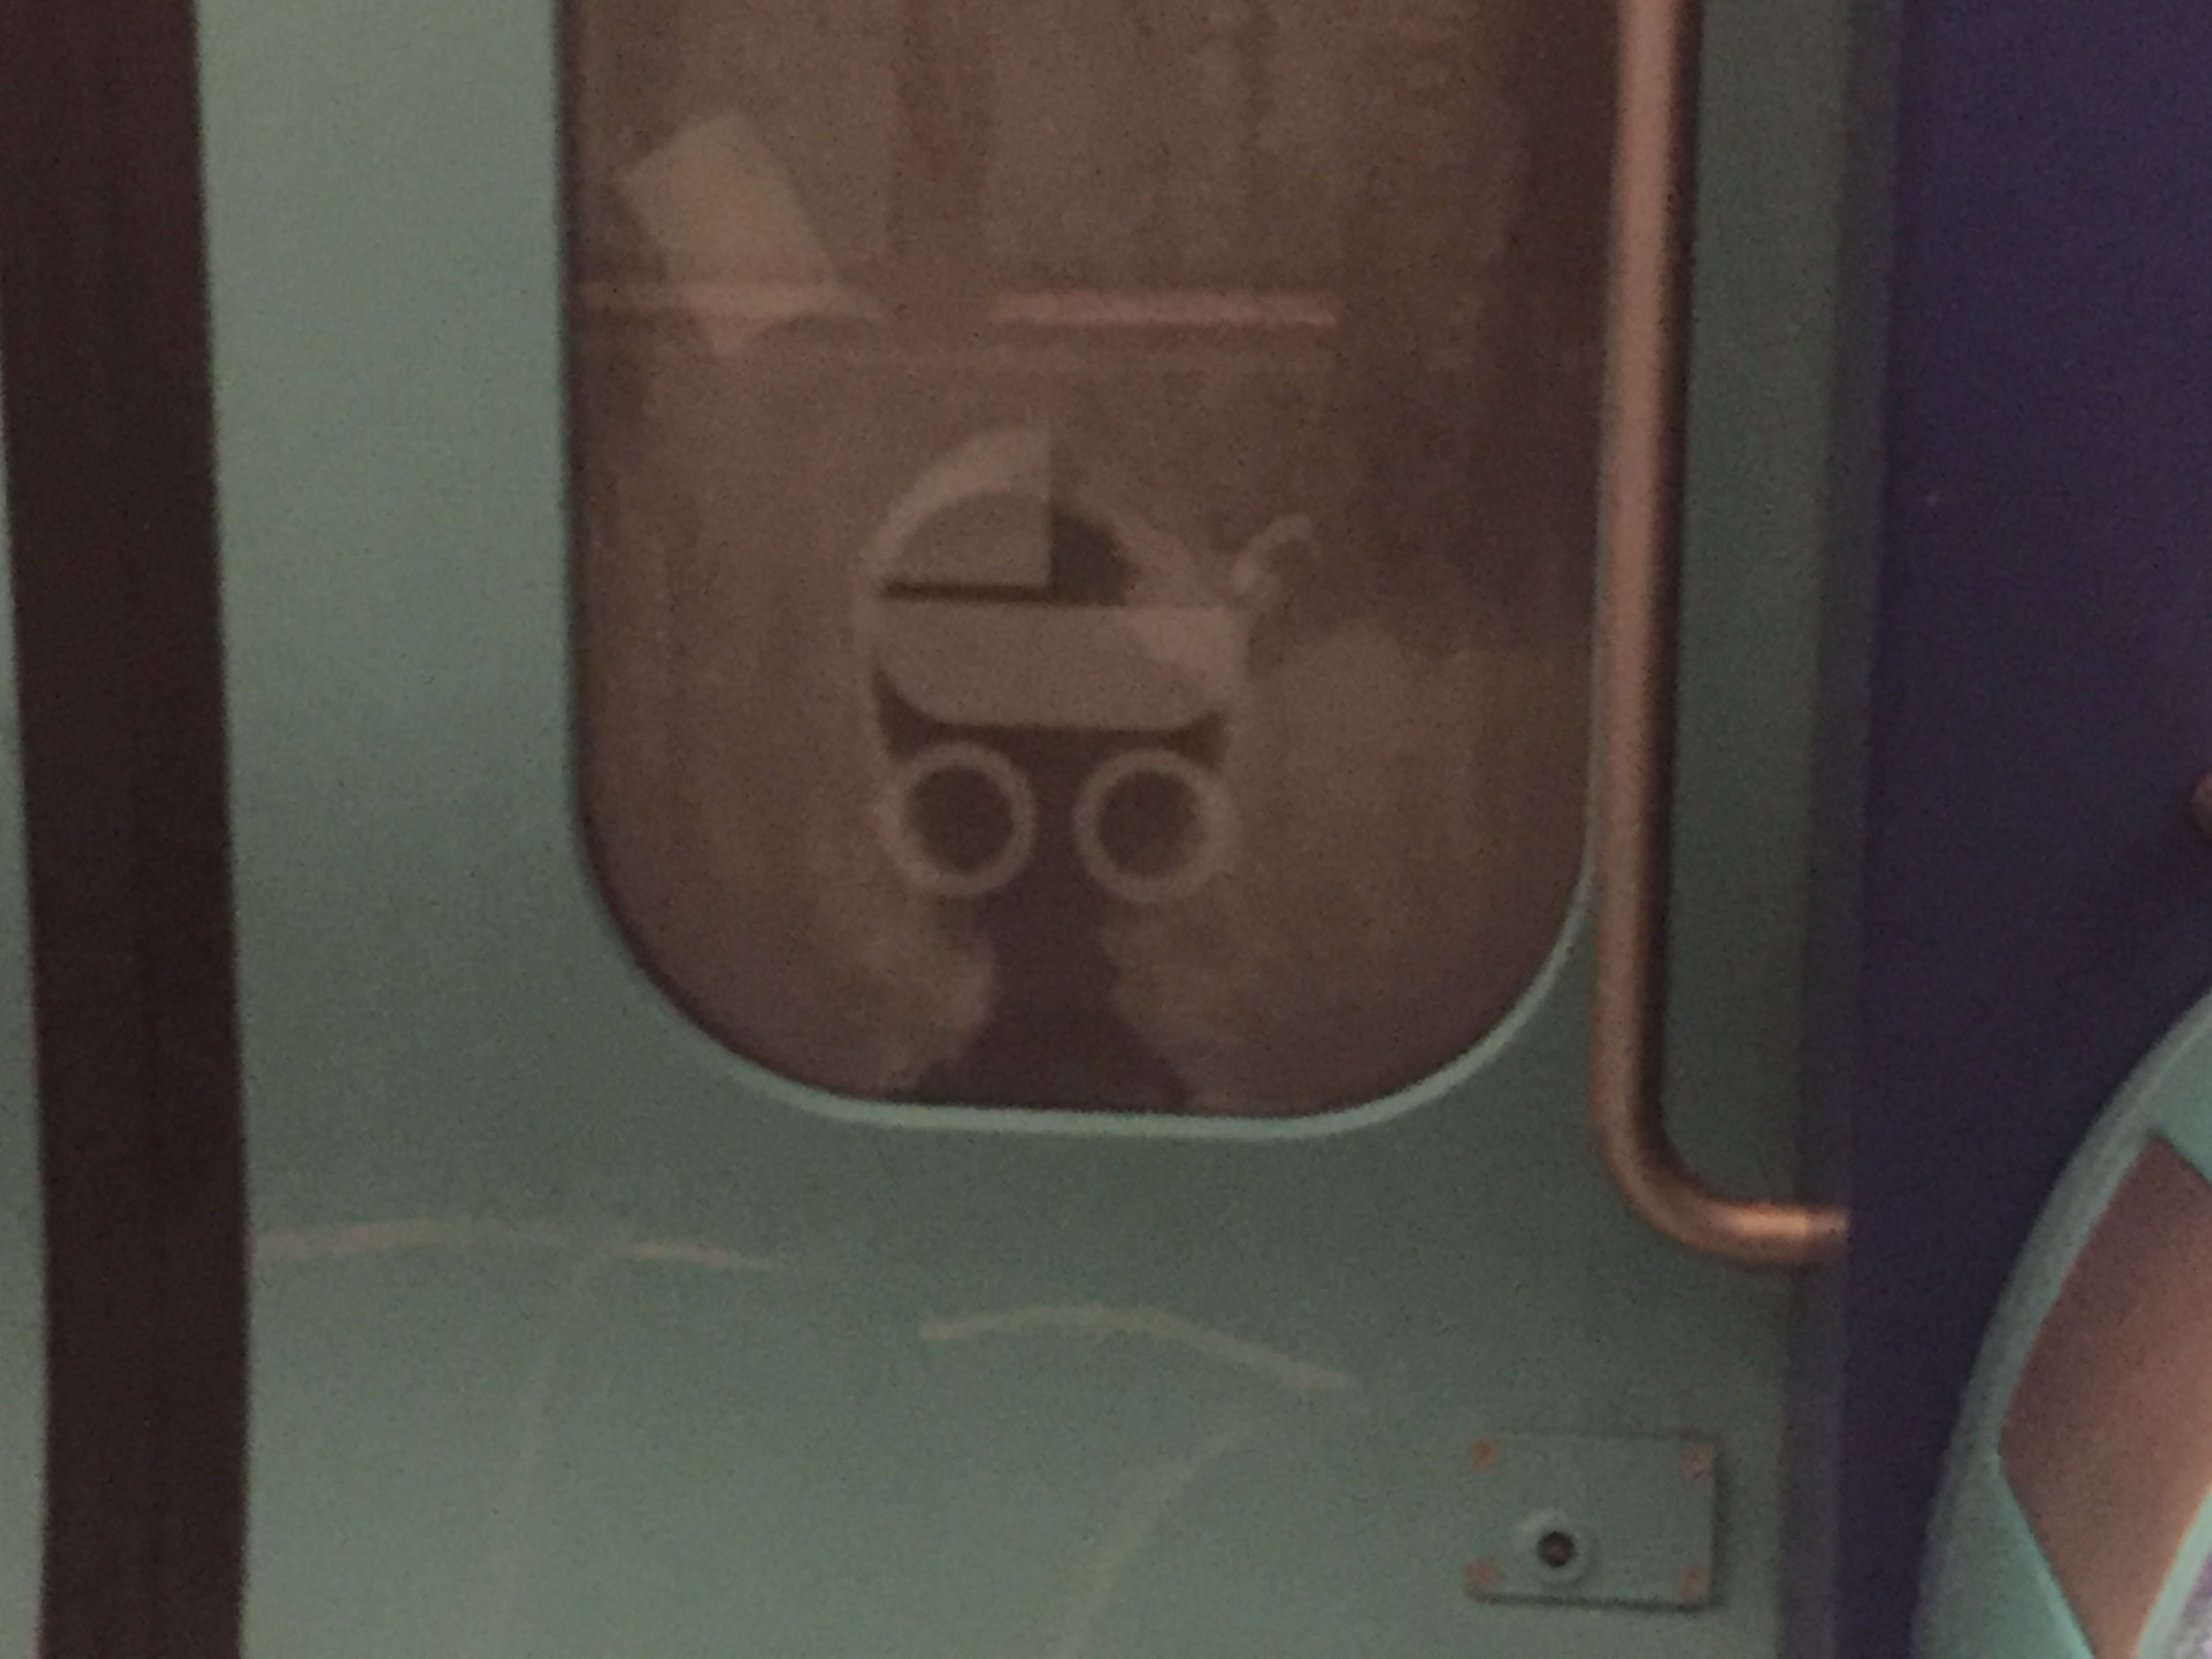 This just creeped me out one day. It looks like someone is staring at me on the train.